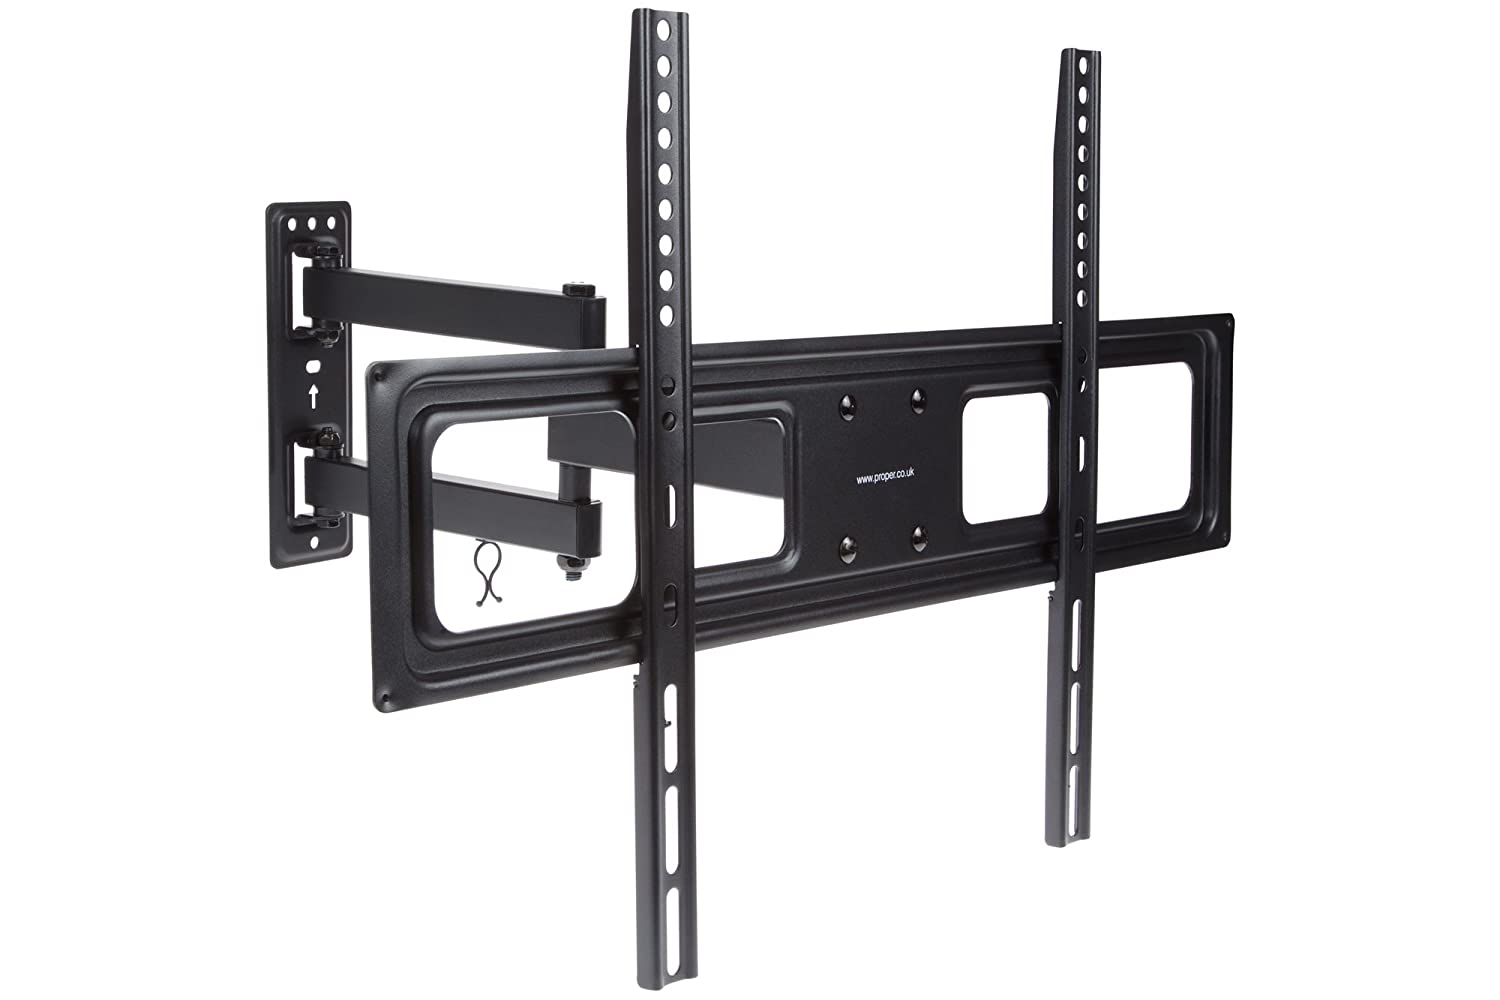 Home Improvement Flat Slim Tv Wall Mount Bracket 23 28 30 32 40 42 48 50 55 Inch Led Lcd Plasma 100% High Quality Materials Bathroom Fixtures